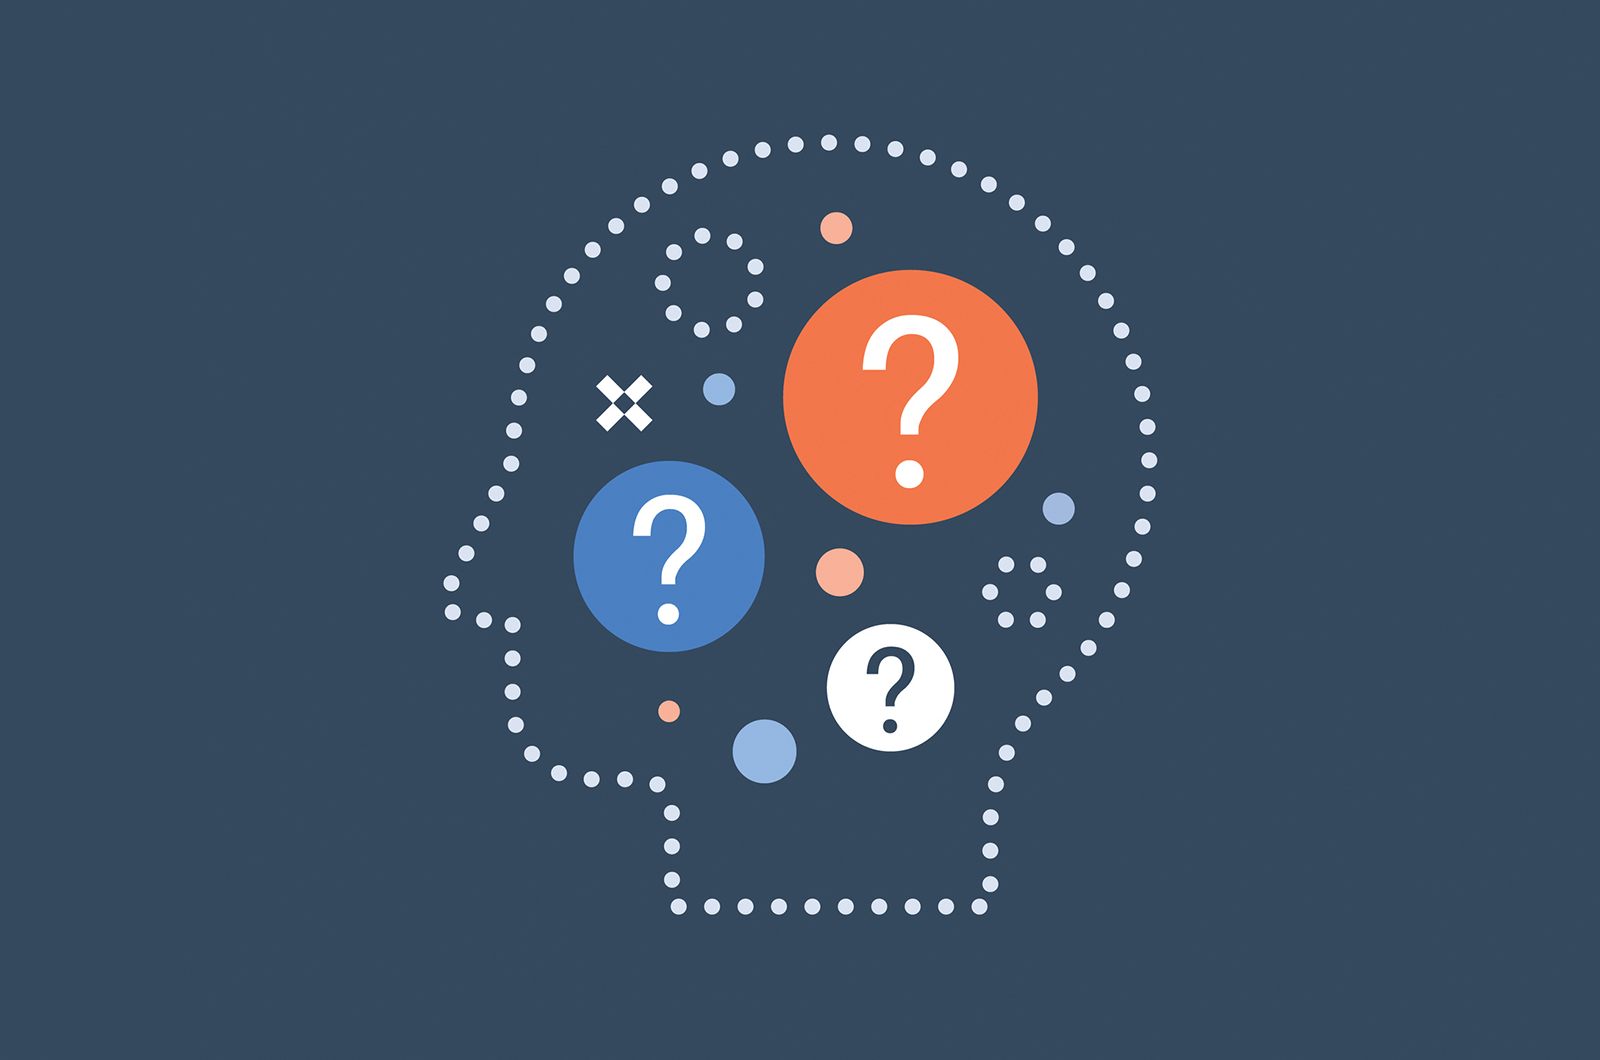 Illustration of a head outline with question marks